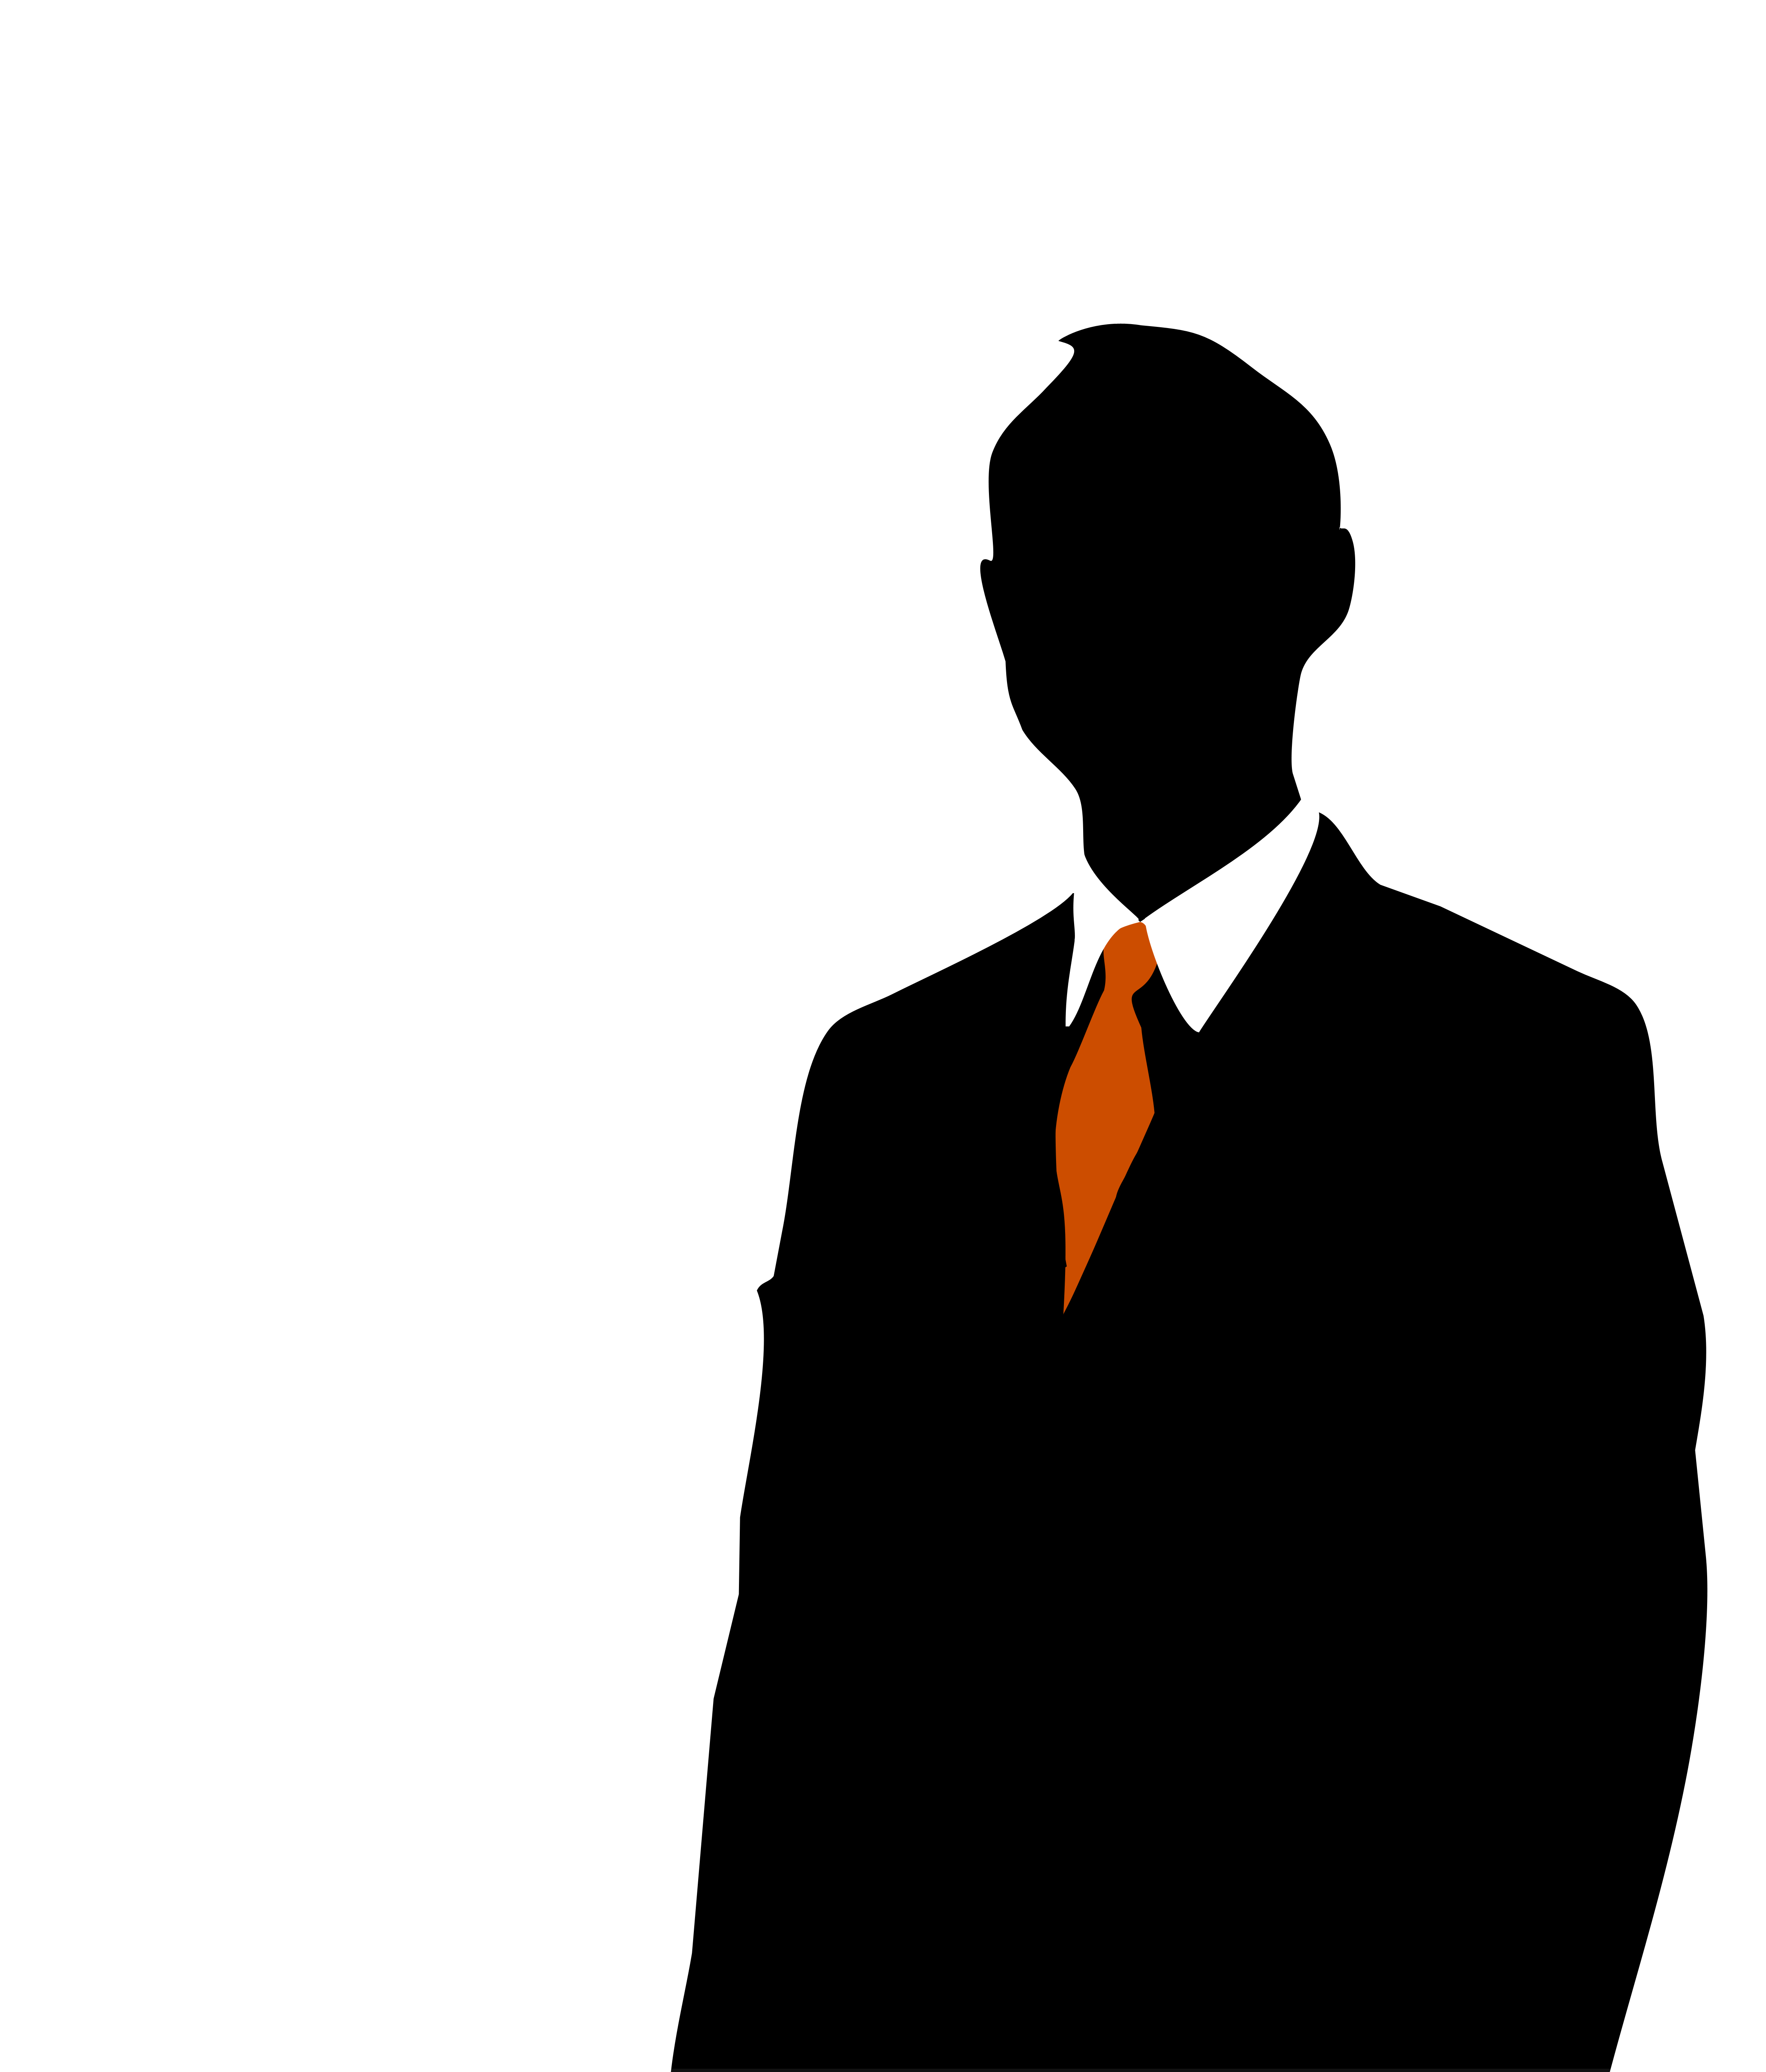 17 Silhouette Of Man Free Cliparts That You Can Download To You